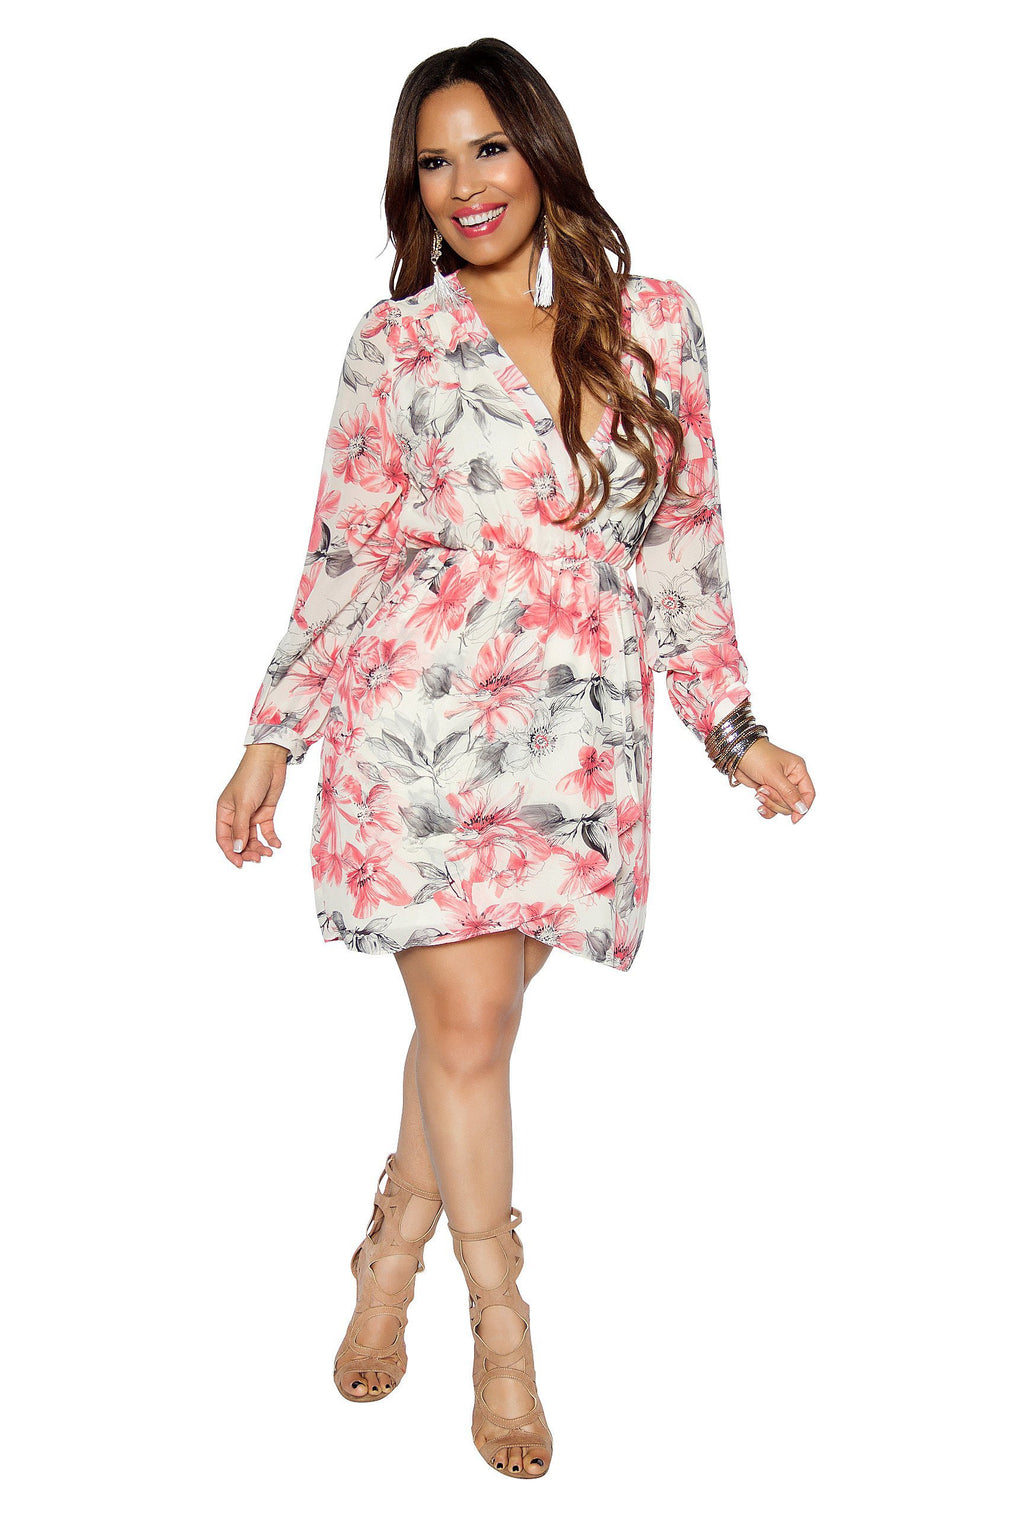 Ivory Coral Floral Print Quarter Sleeve Dress - MY SEXY STYLES